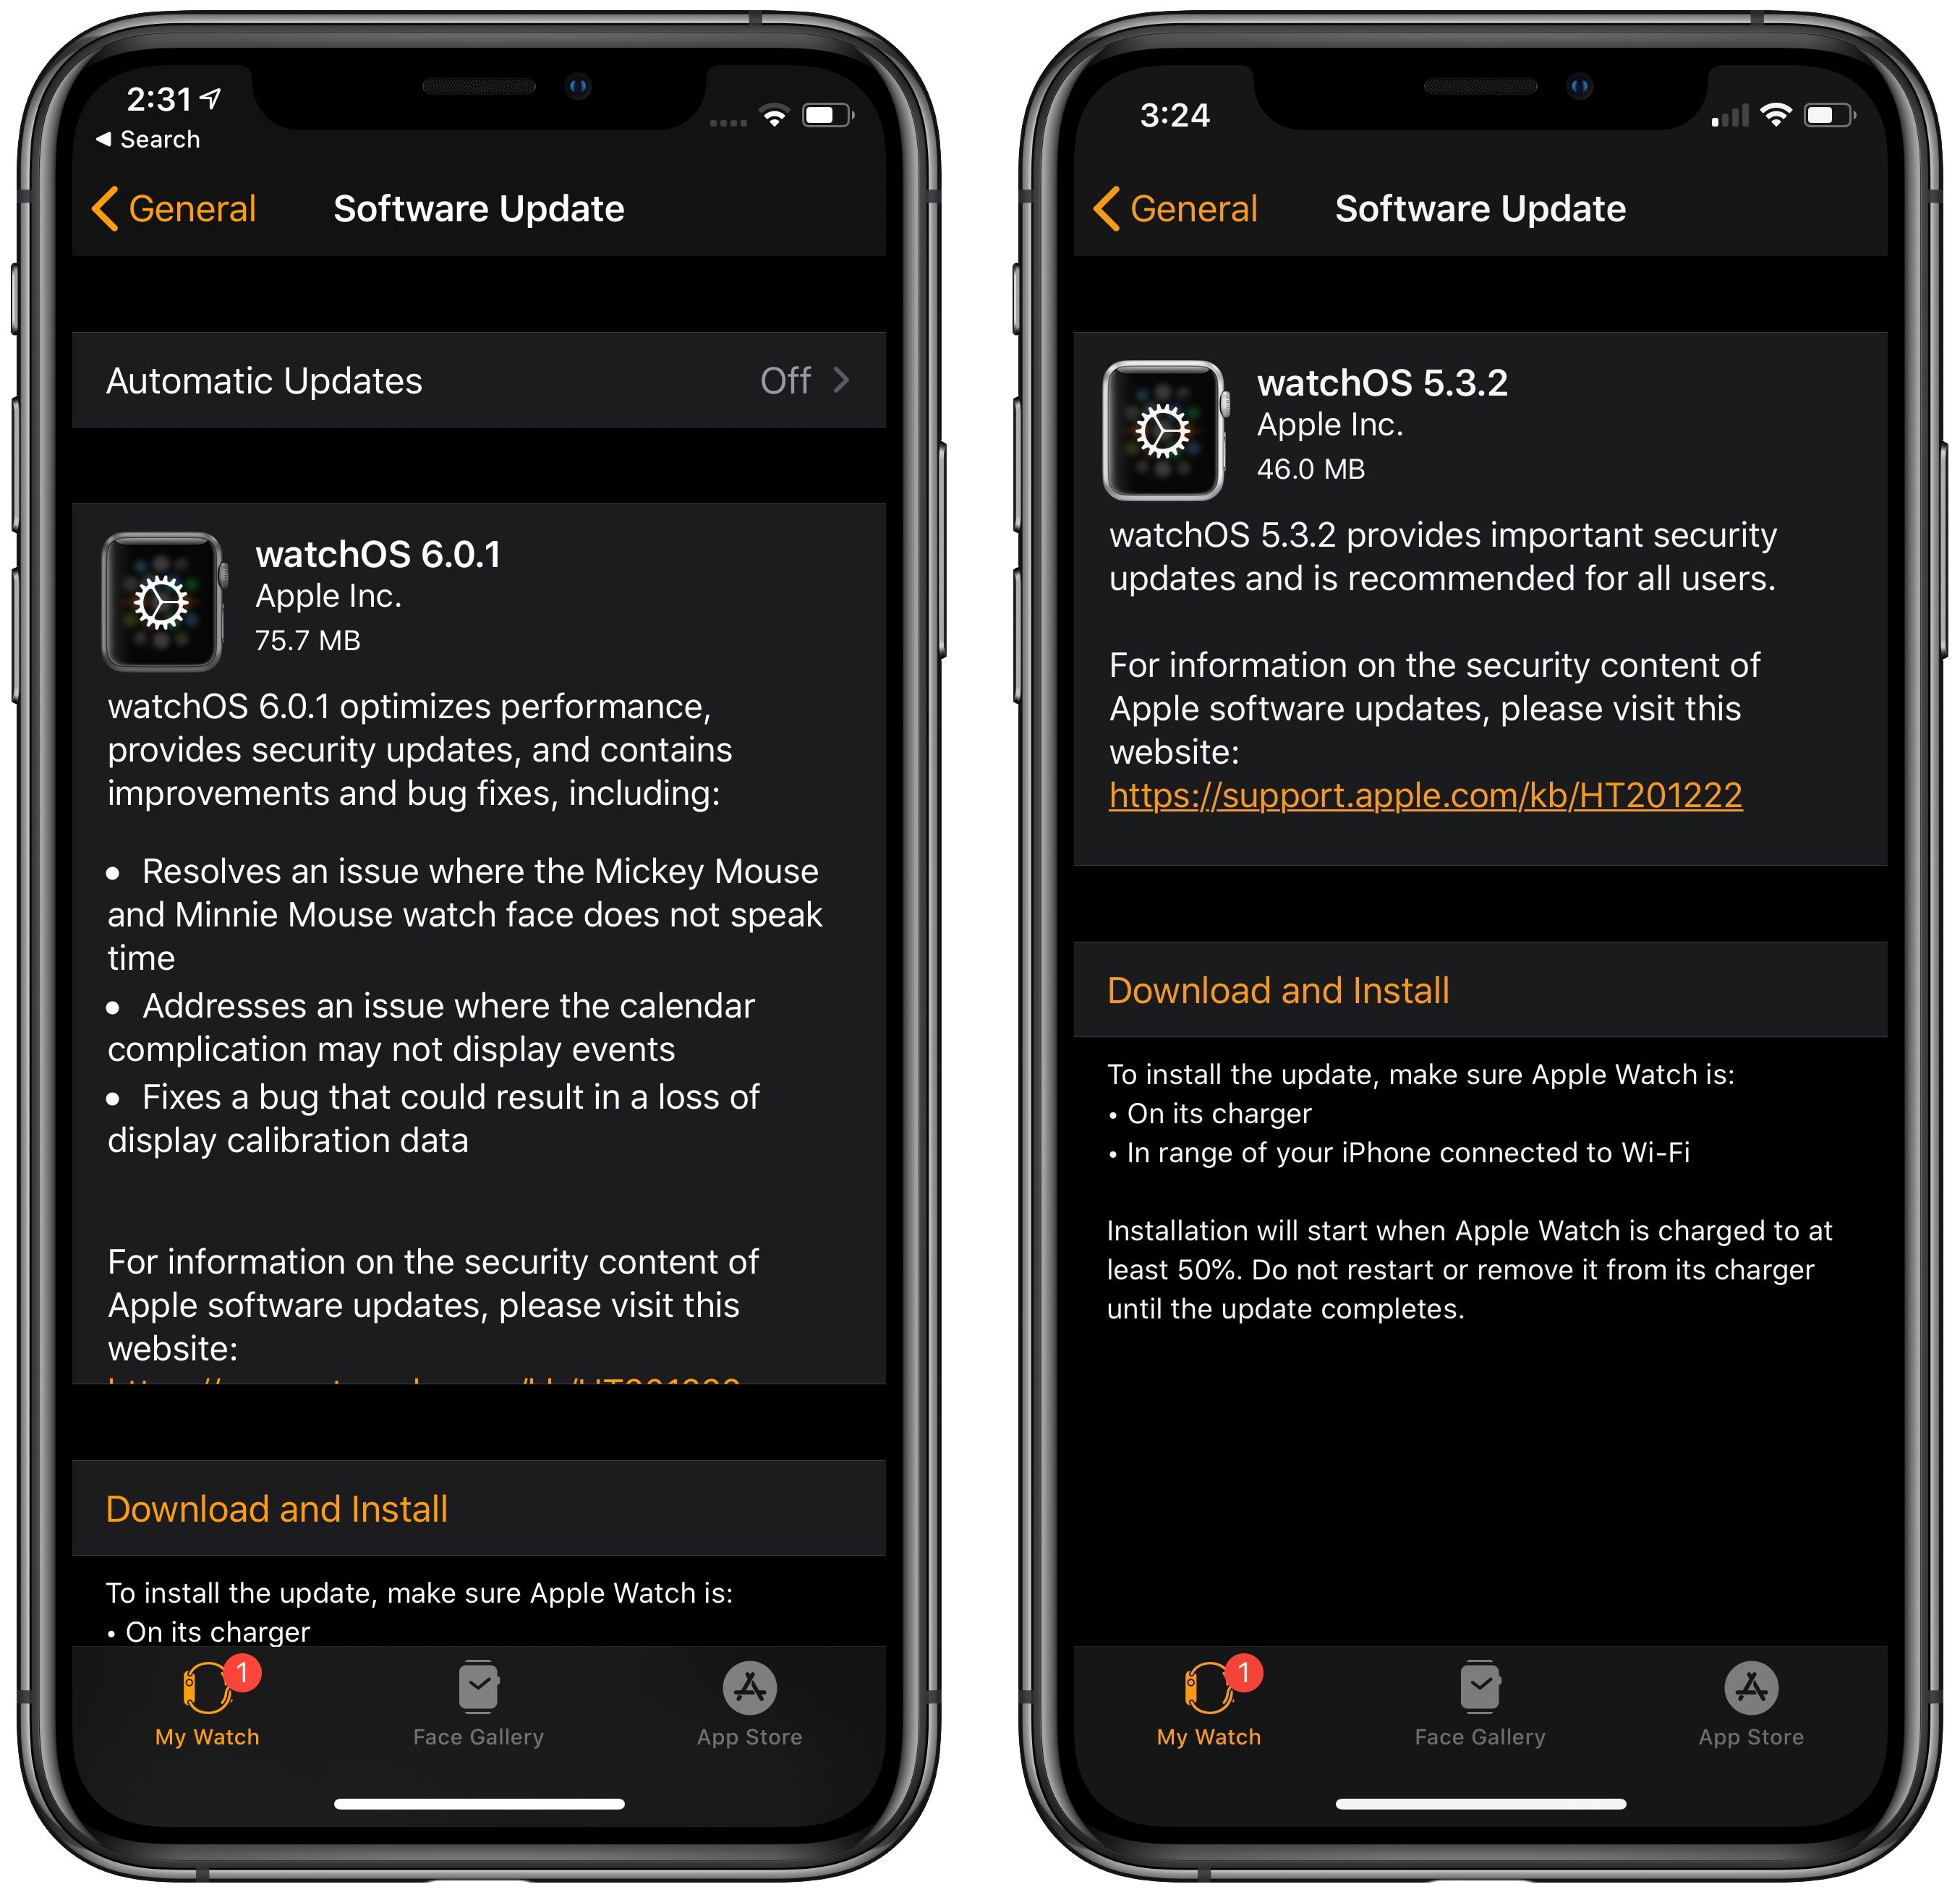 Release notes for watchOS 5.3.2 and 6.0.1